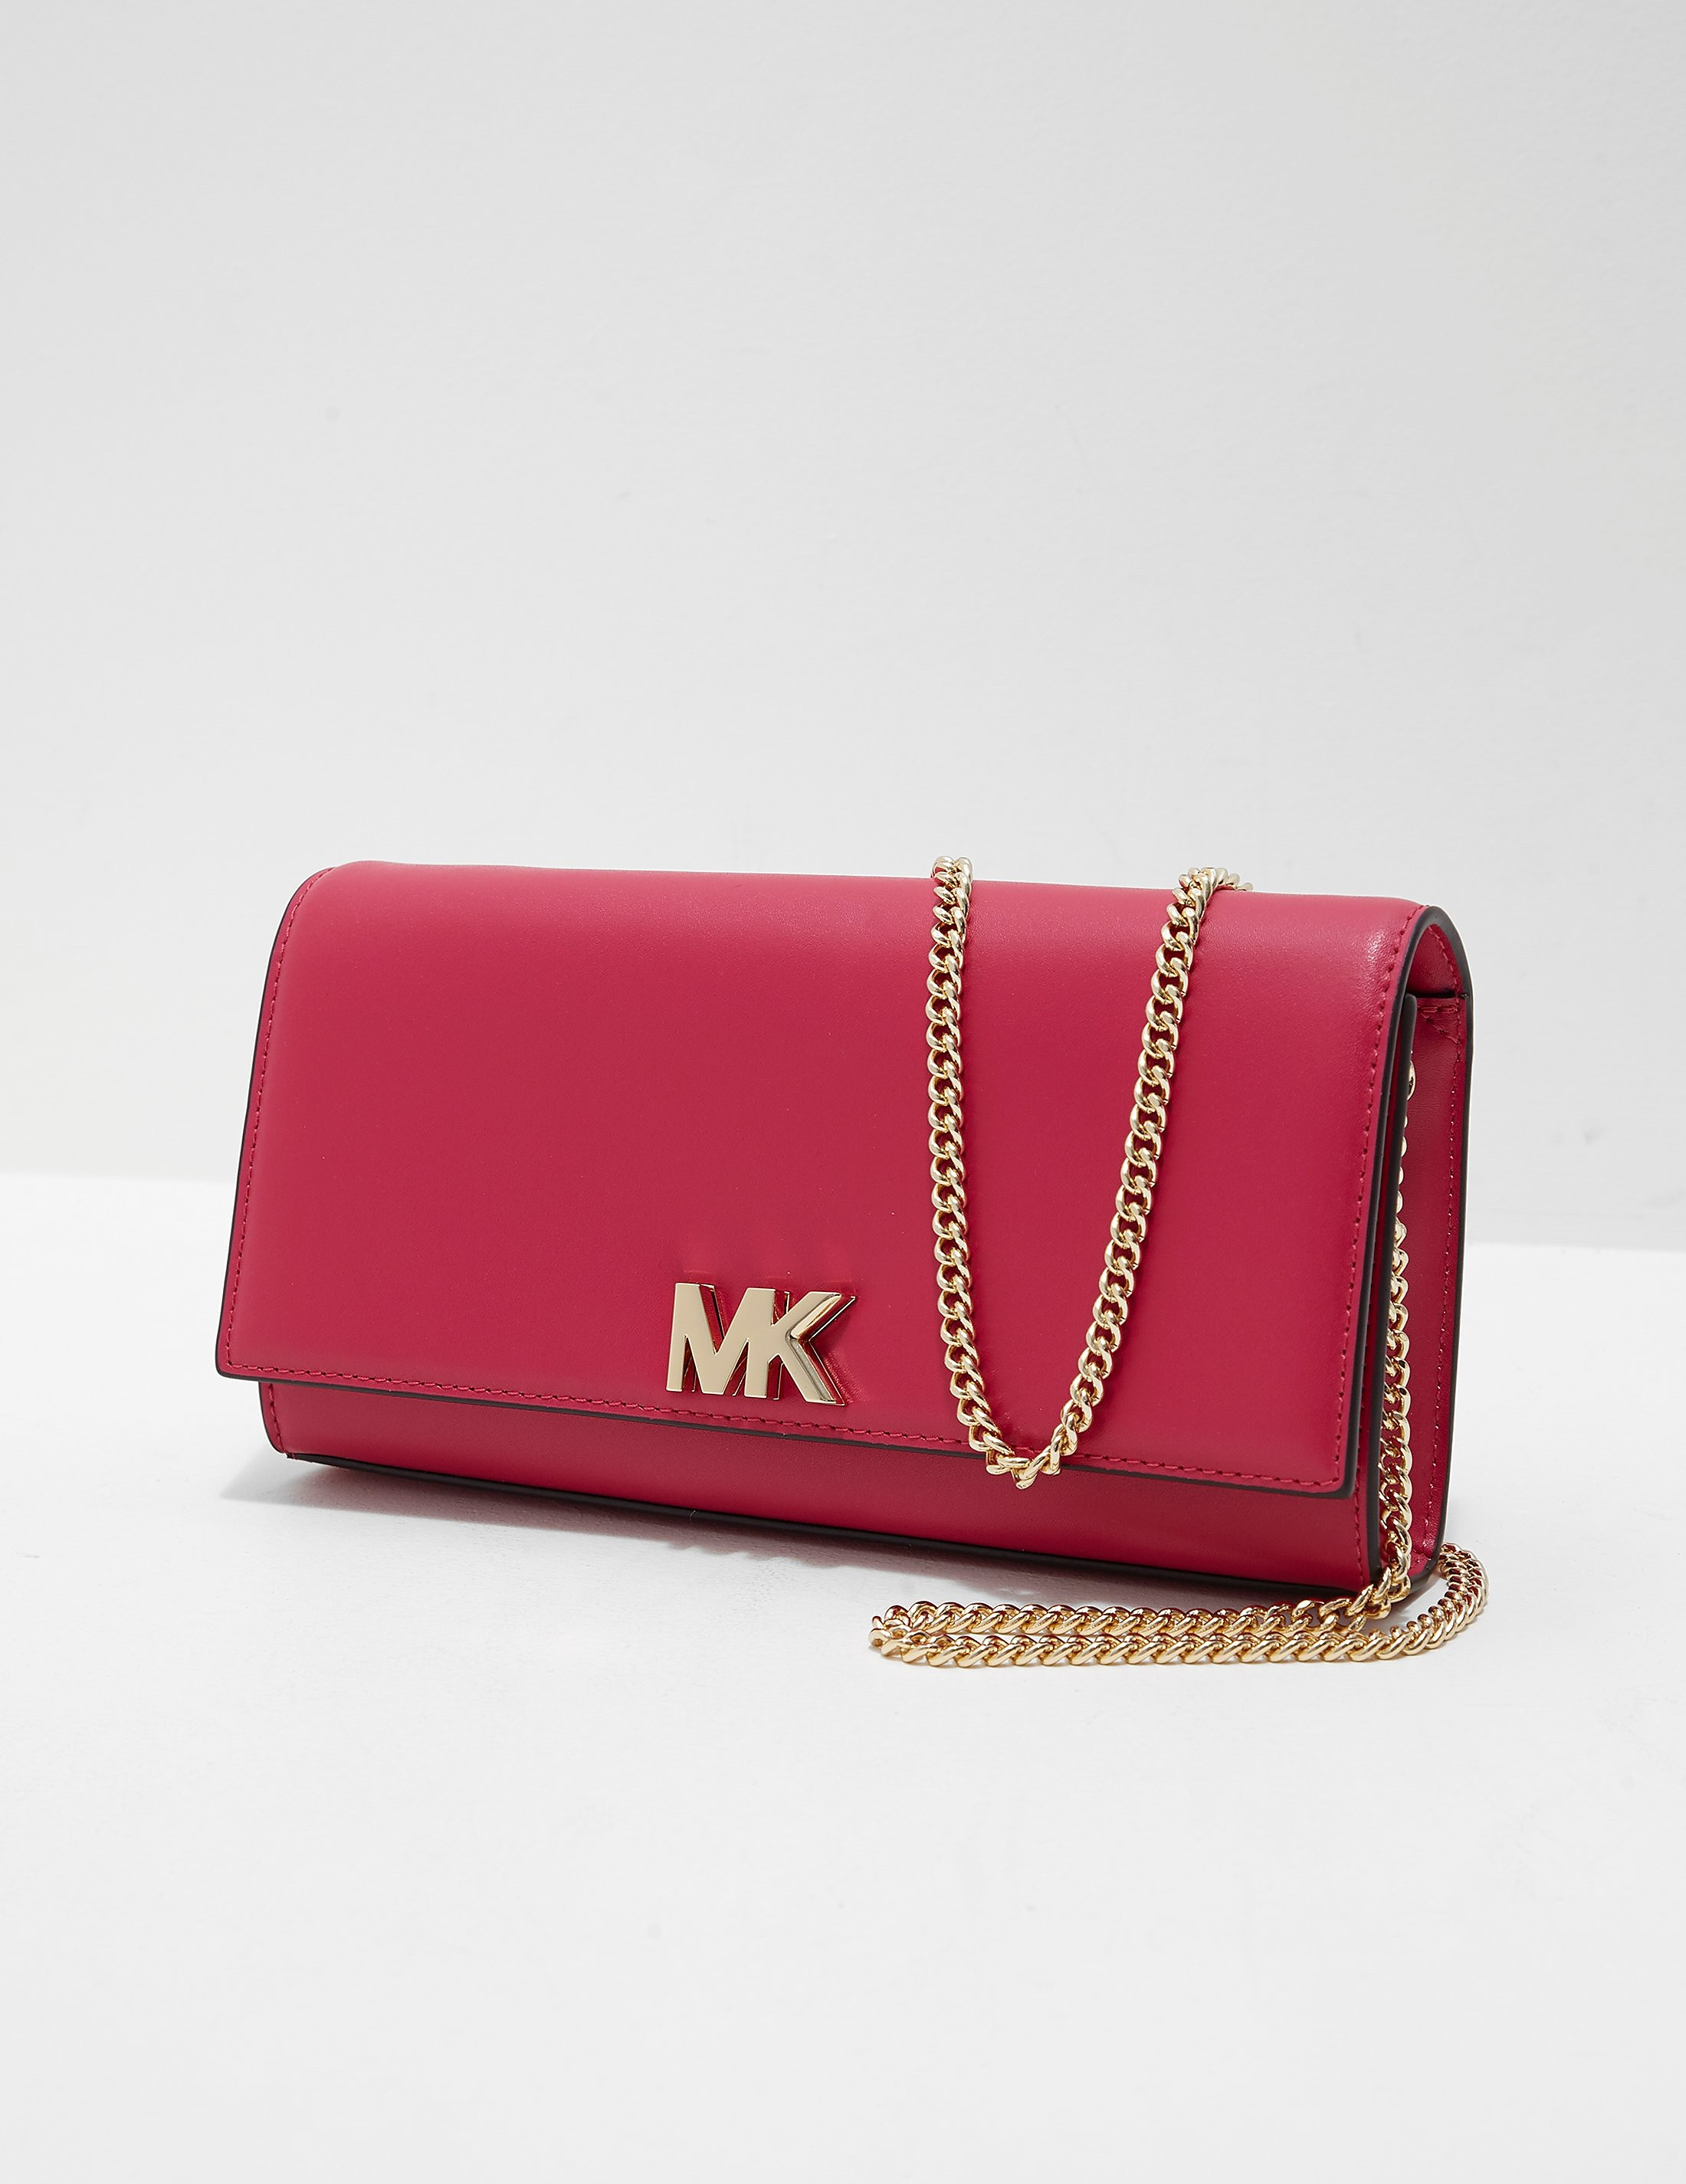 Michael Kors East West Clutch Bag